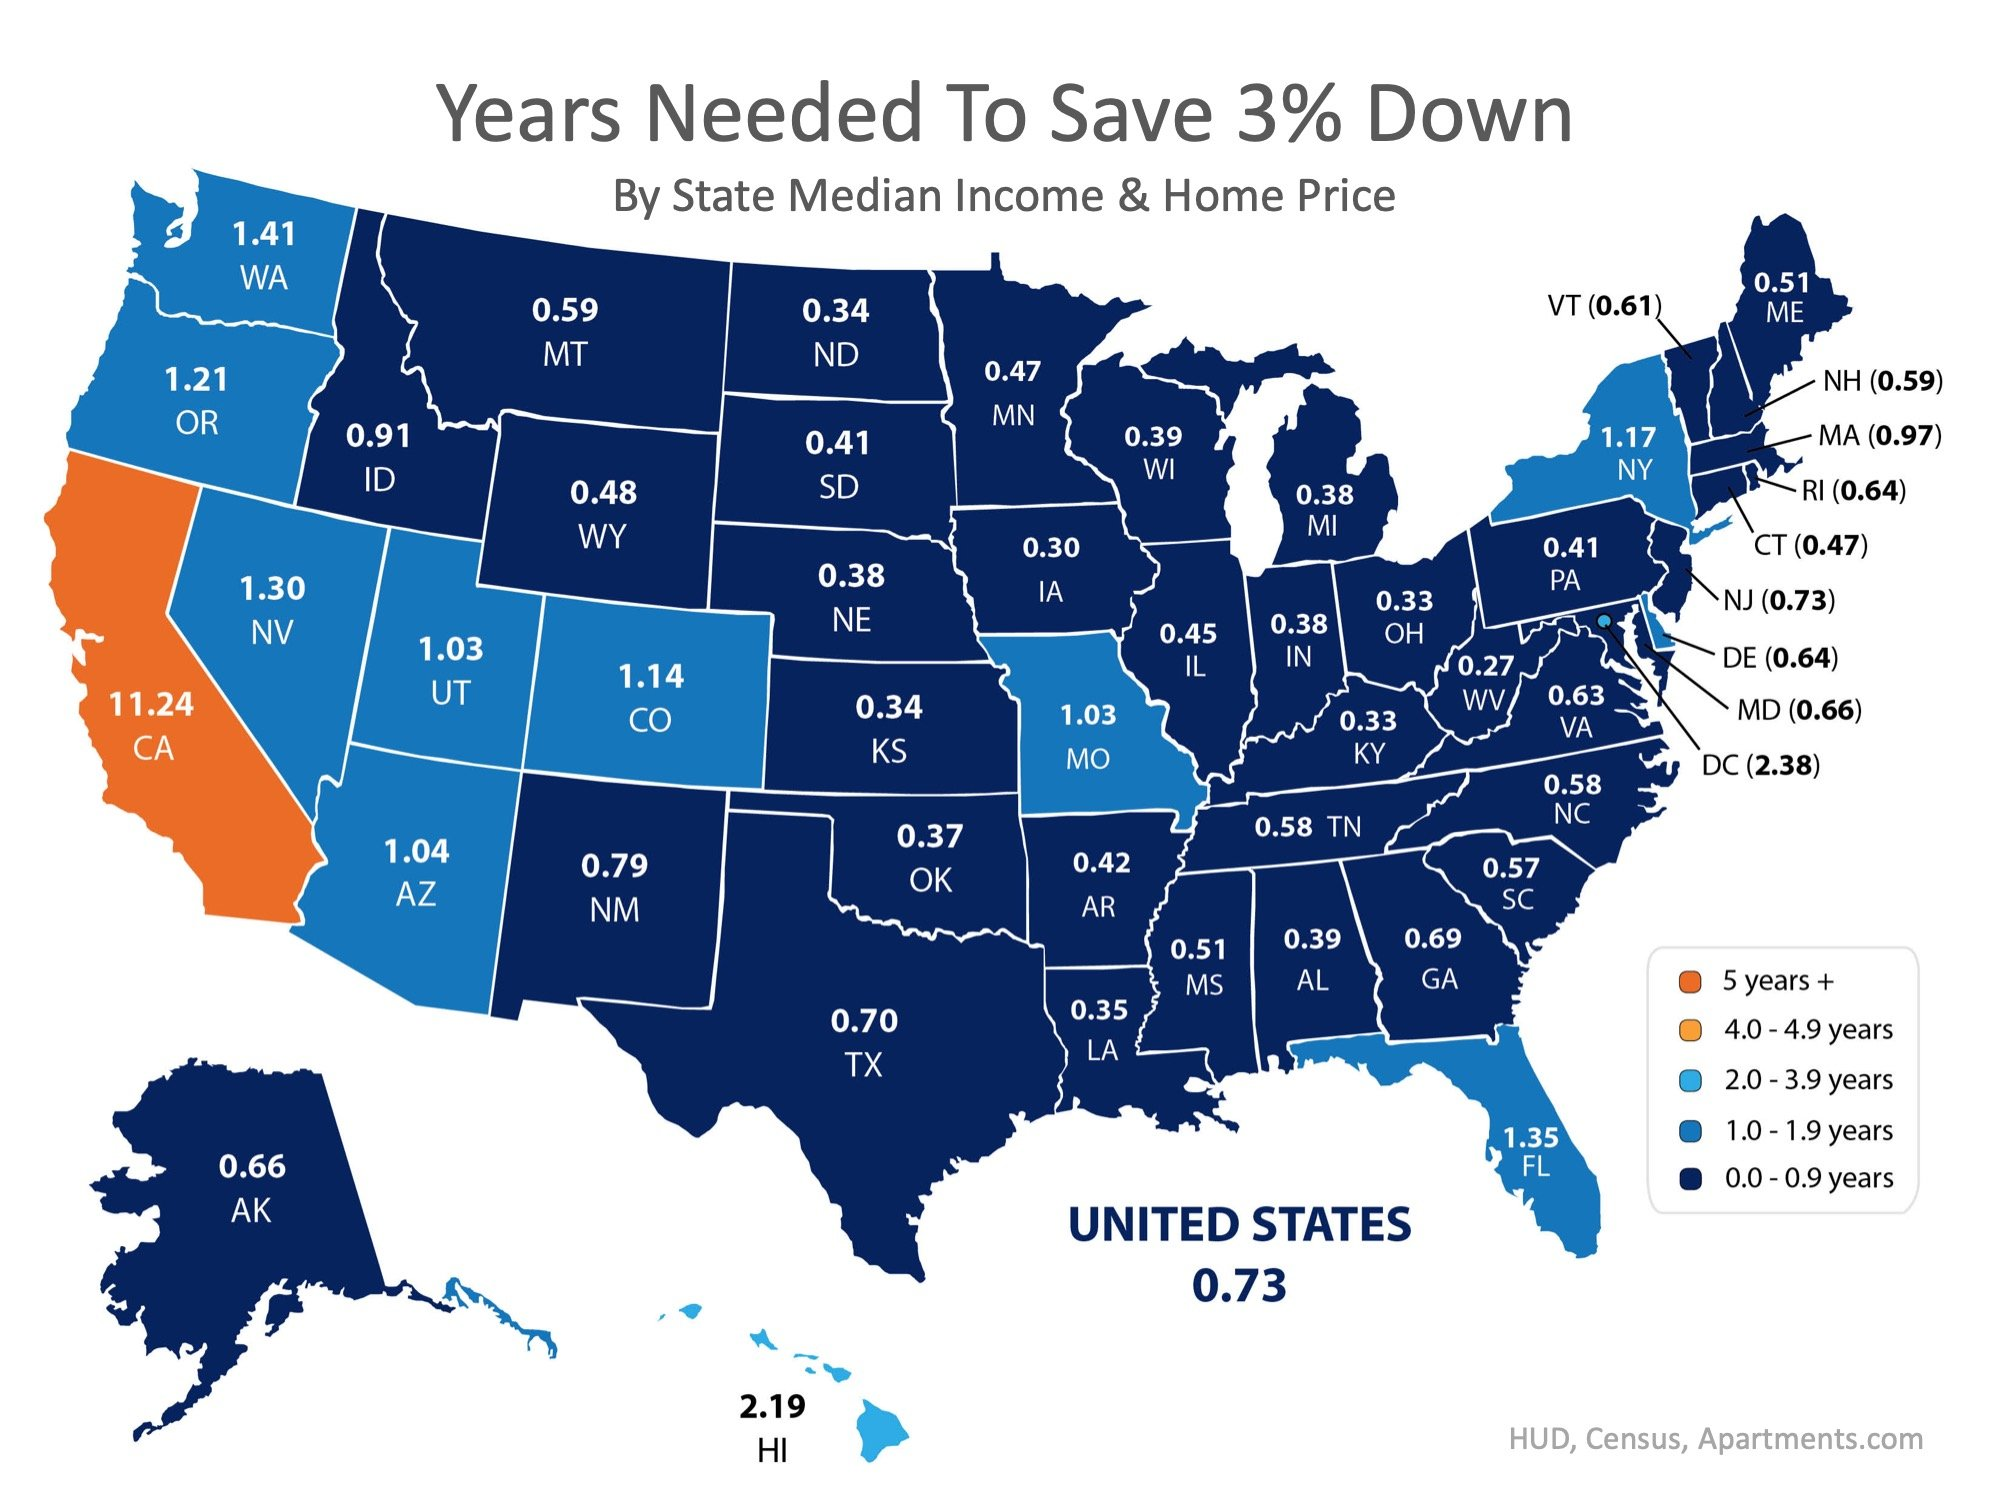 How Quickly Can You Save Your Down Payment?